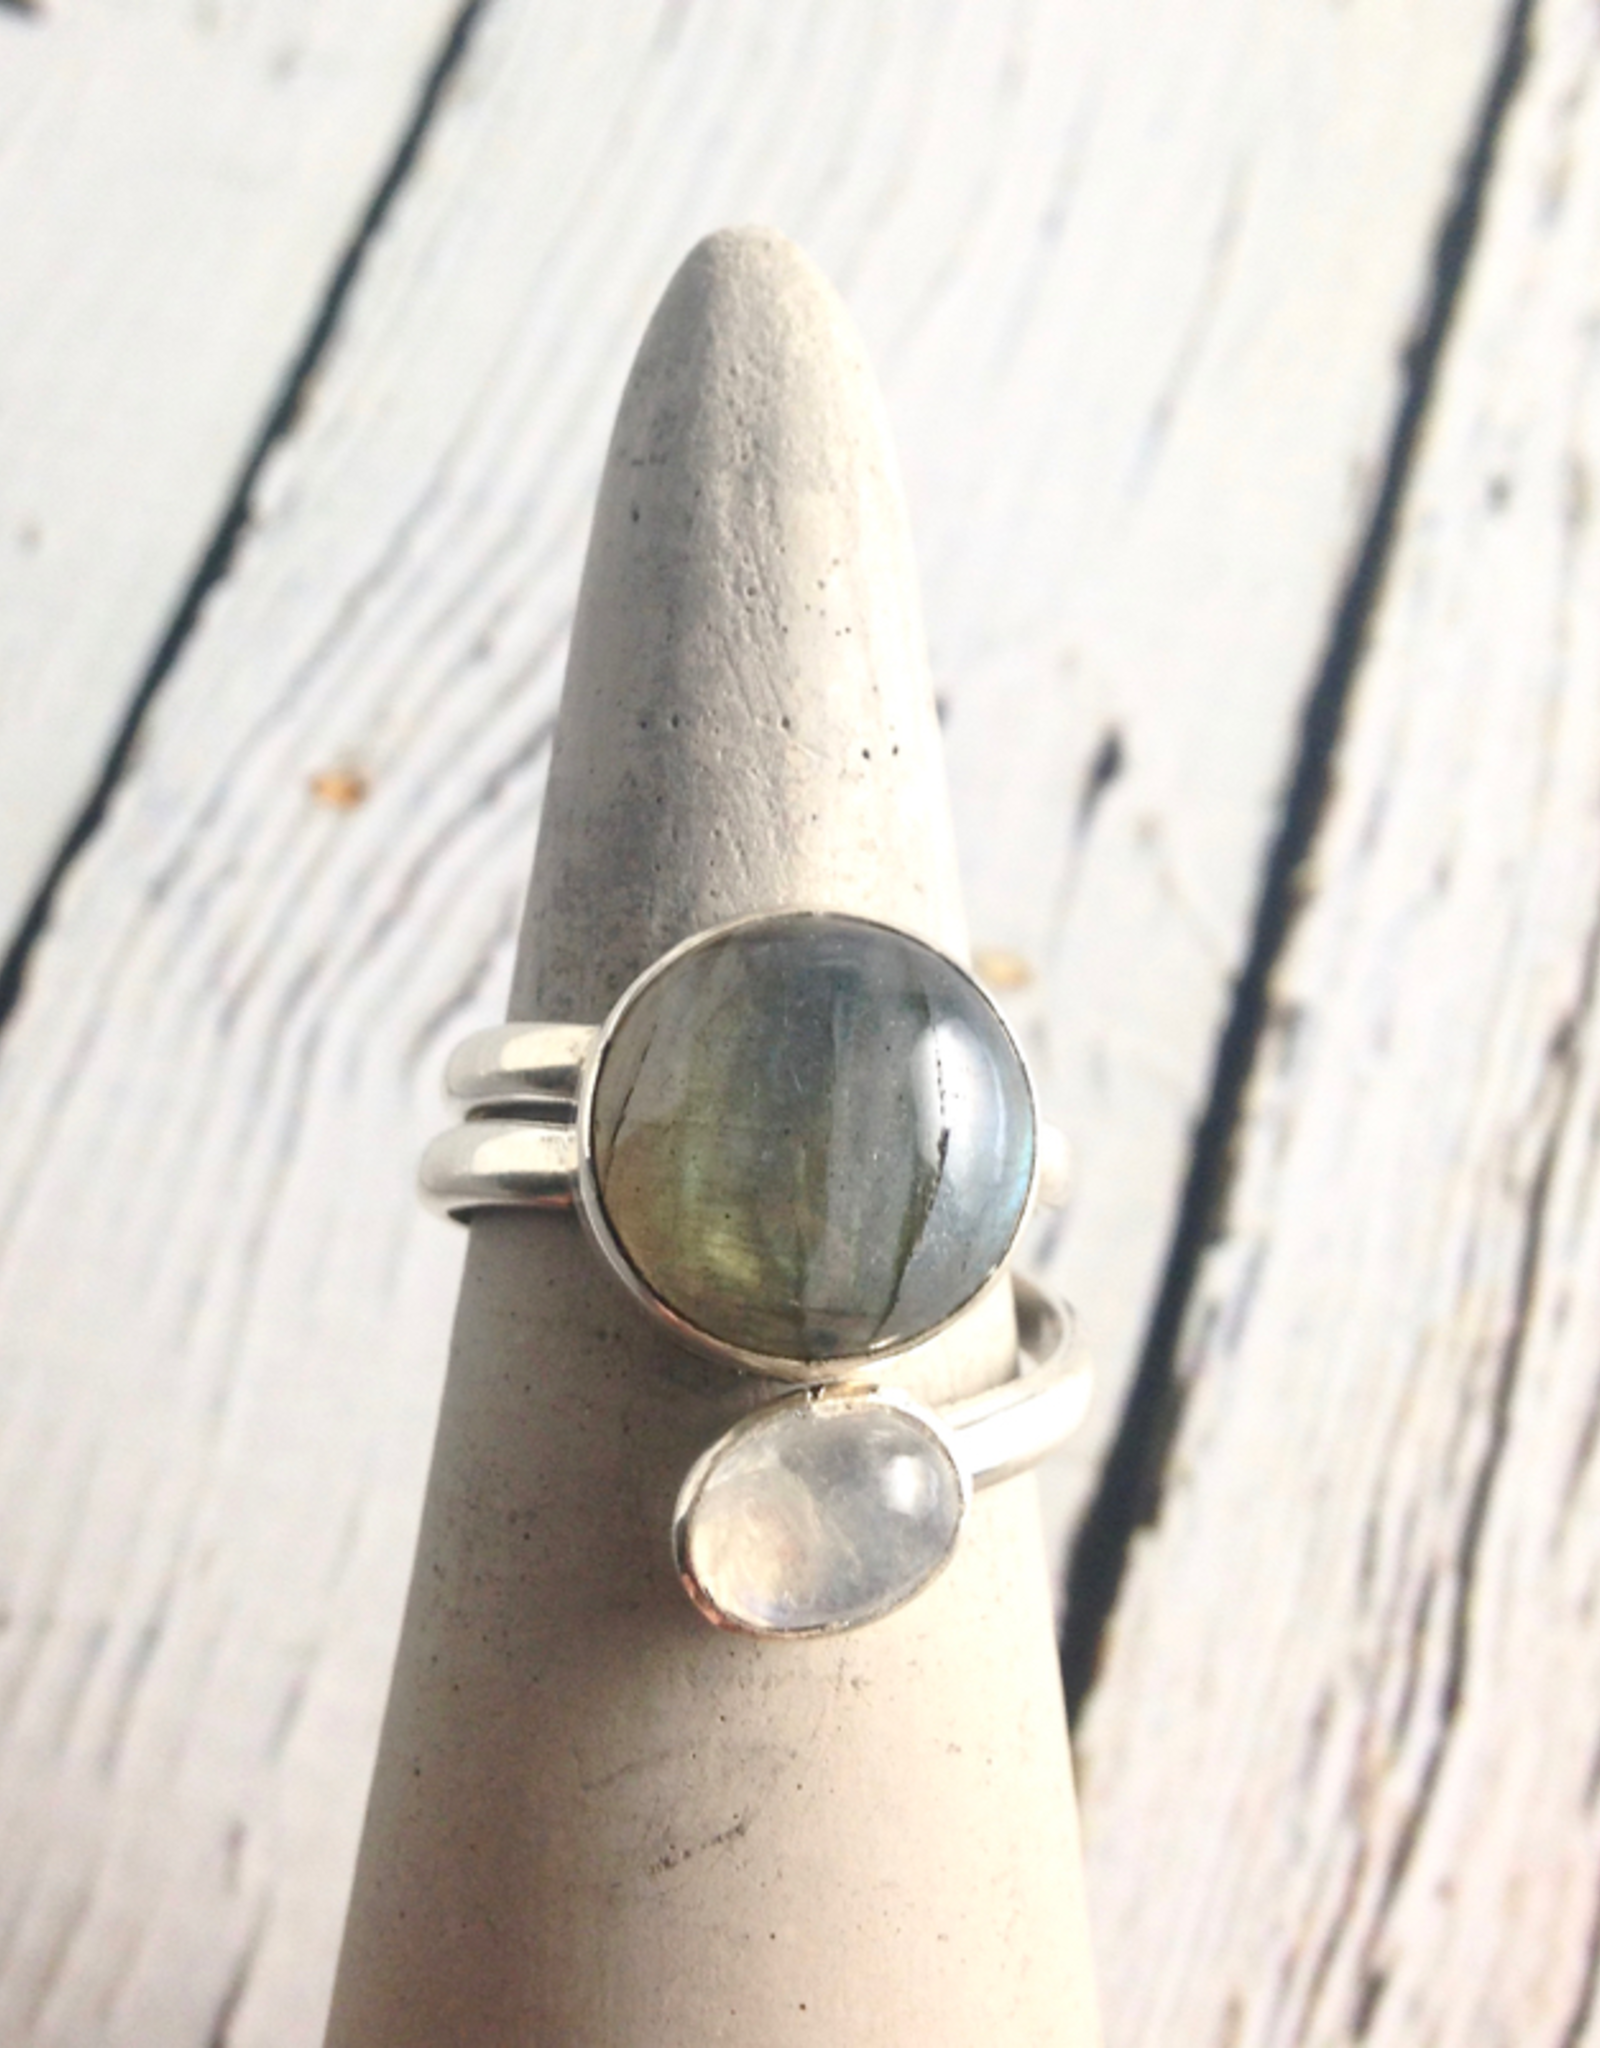 TigerMtn Sterling Silver Wrap Ring with Moonstone and Labradorite, Size 9